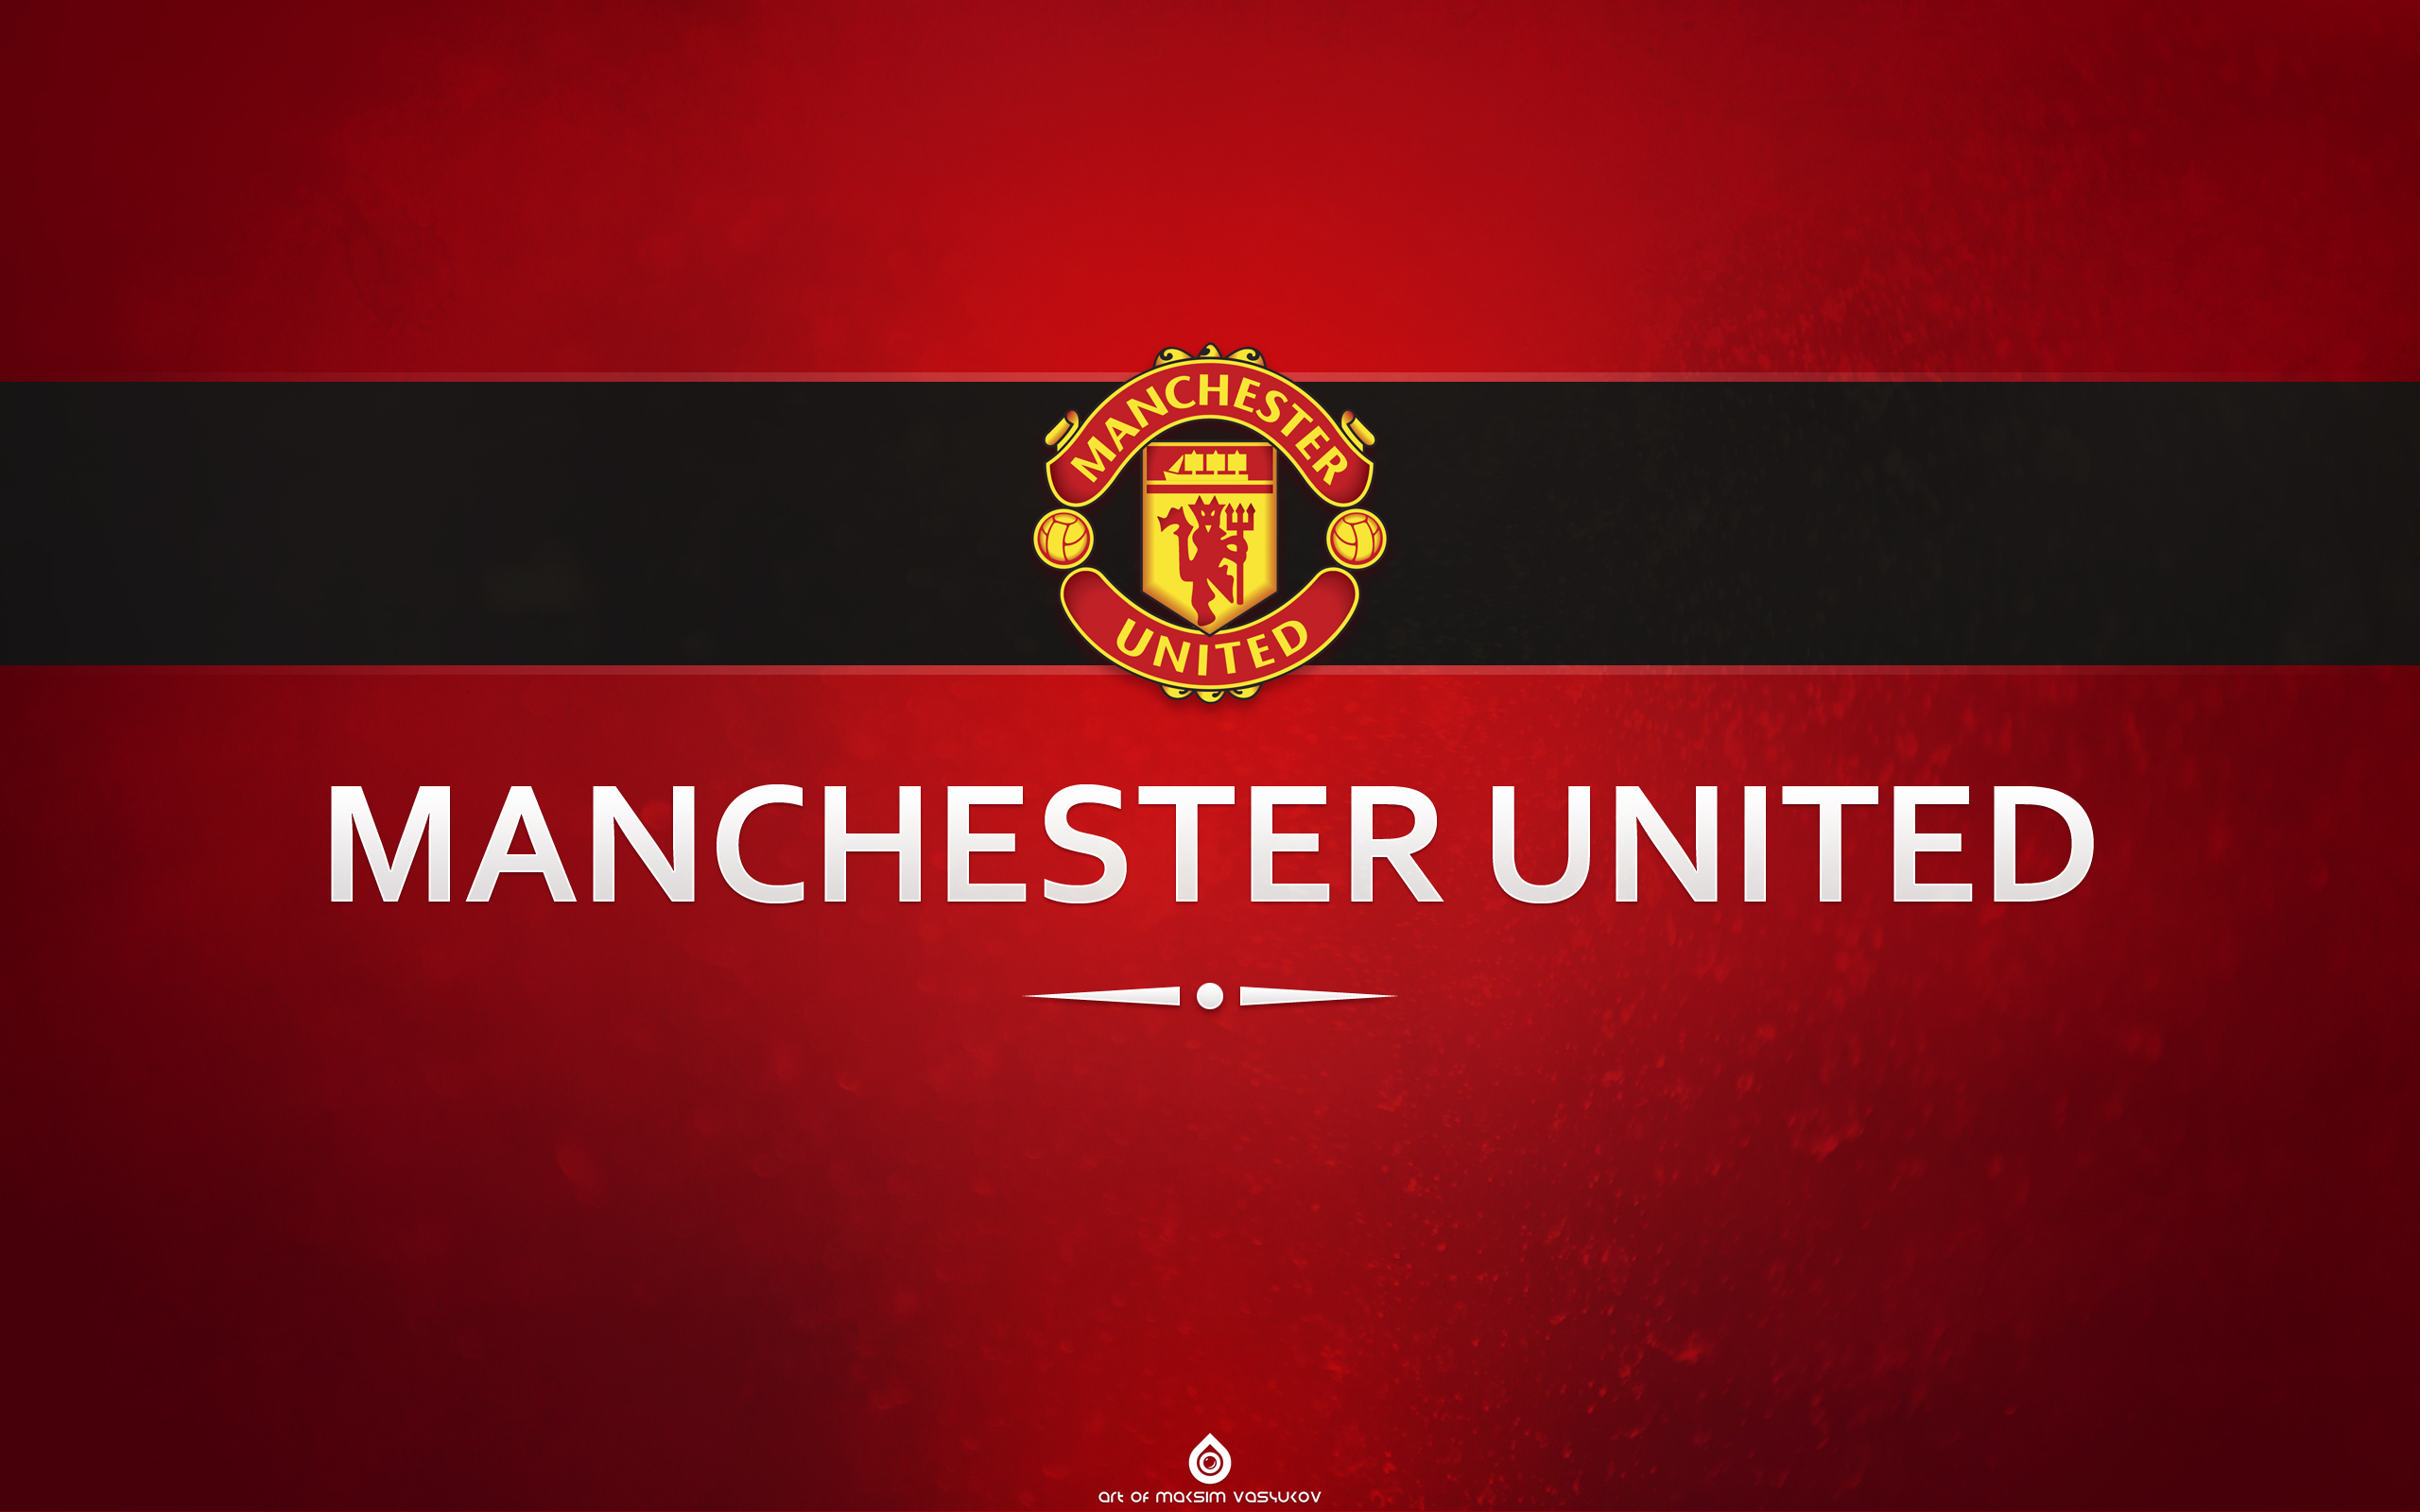 Manchester United Images Icons Wallpapers and Photos on Fanpop 2560x1600